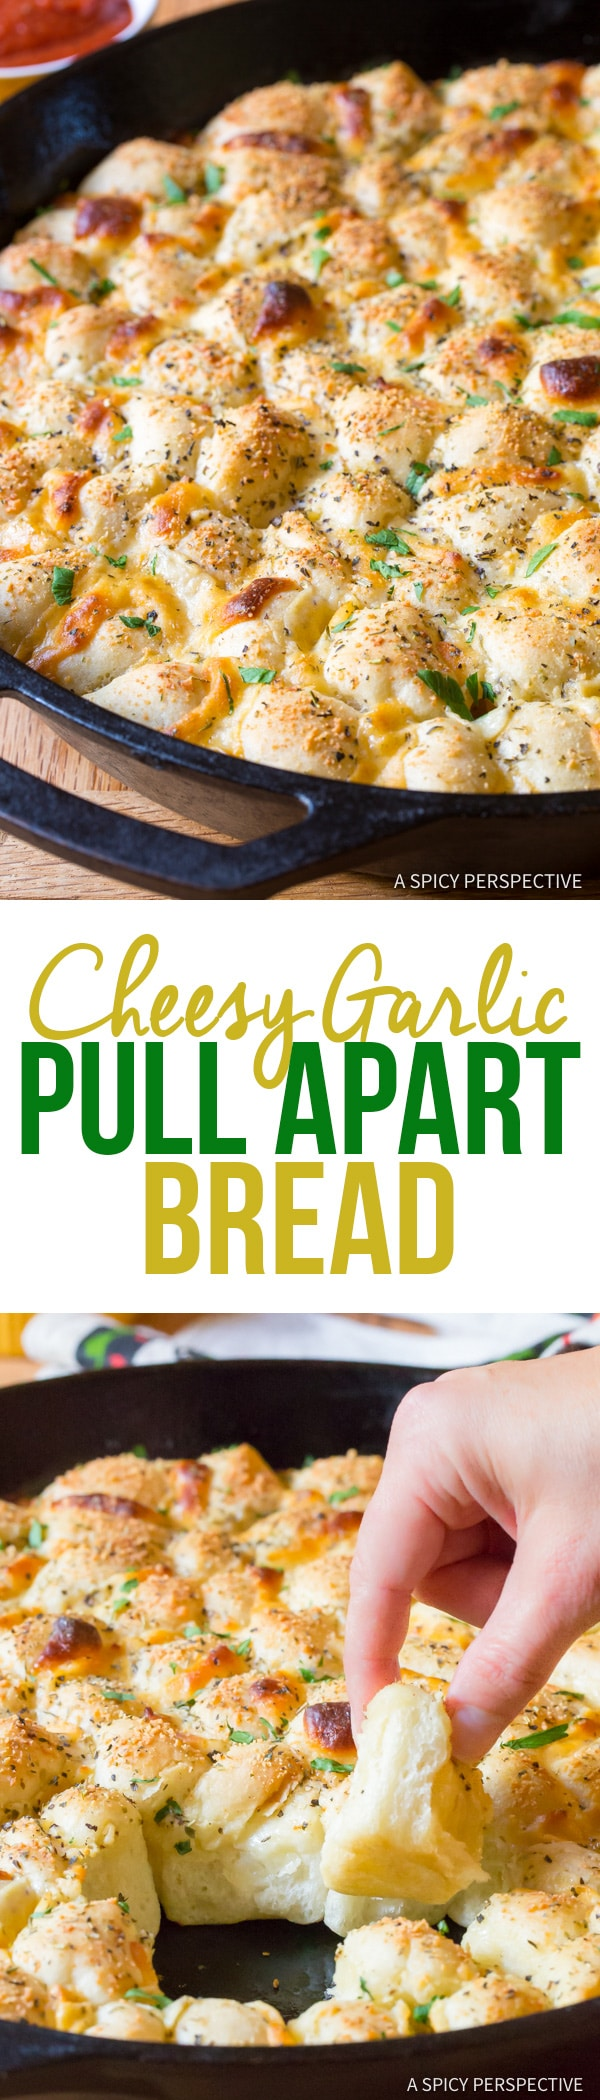 6-Ingredient Cheesy Garlic Pull Apart Bread Recipe | A Spicy Perspective